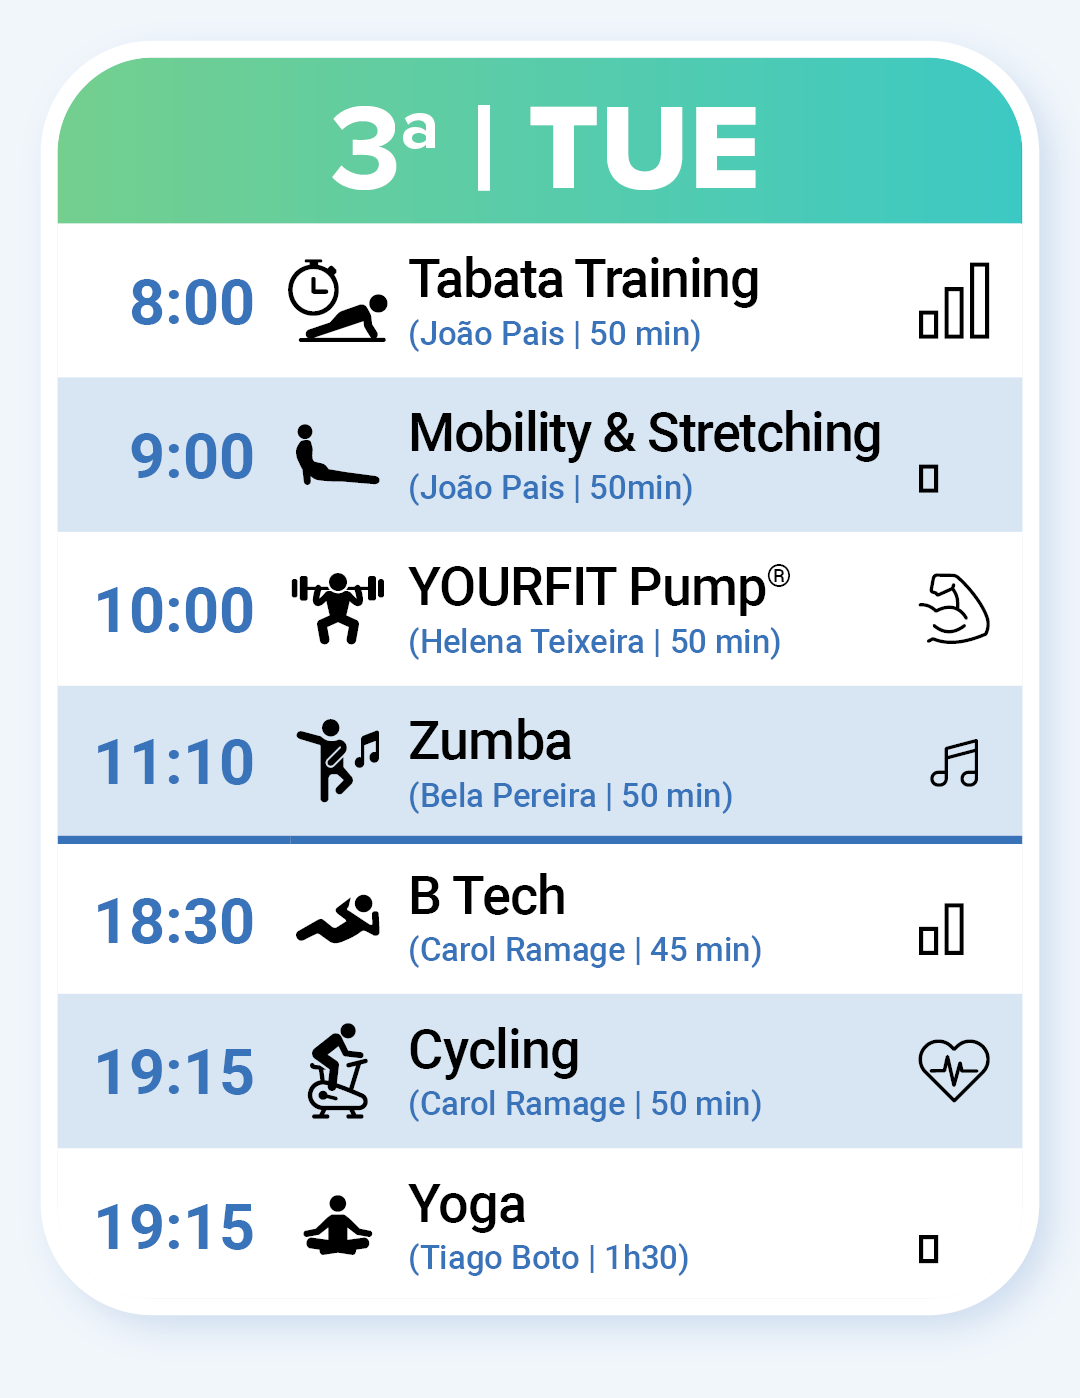 Fitness Classes on Tuesday: Tabata Training, Mobility & Stretching, YOURFIT Pump, Zumba, B Tech and Cycling and Yoga.